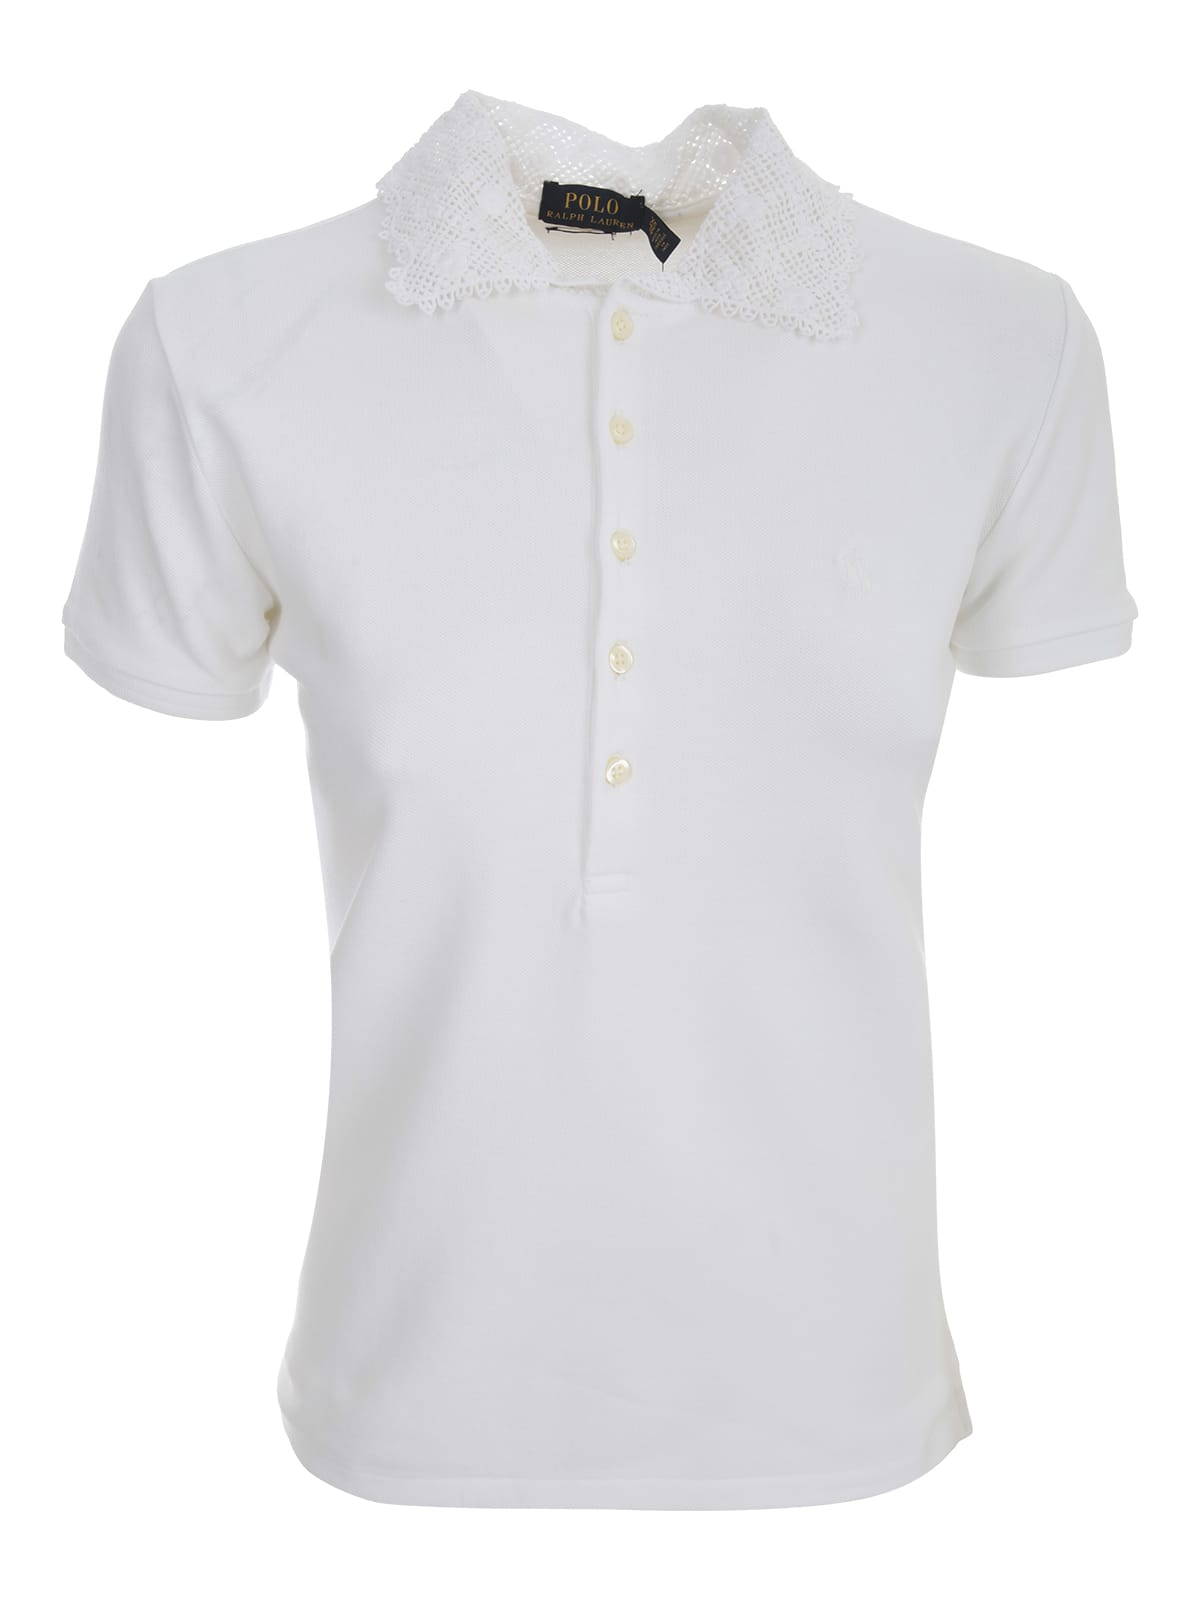 Polo Ralph Lauren Polo S/s W/lace On Neck